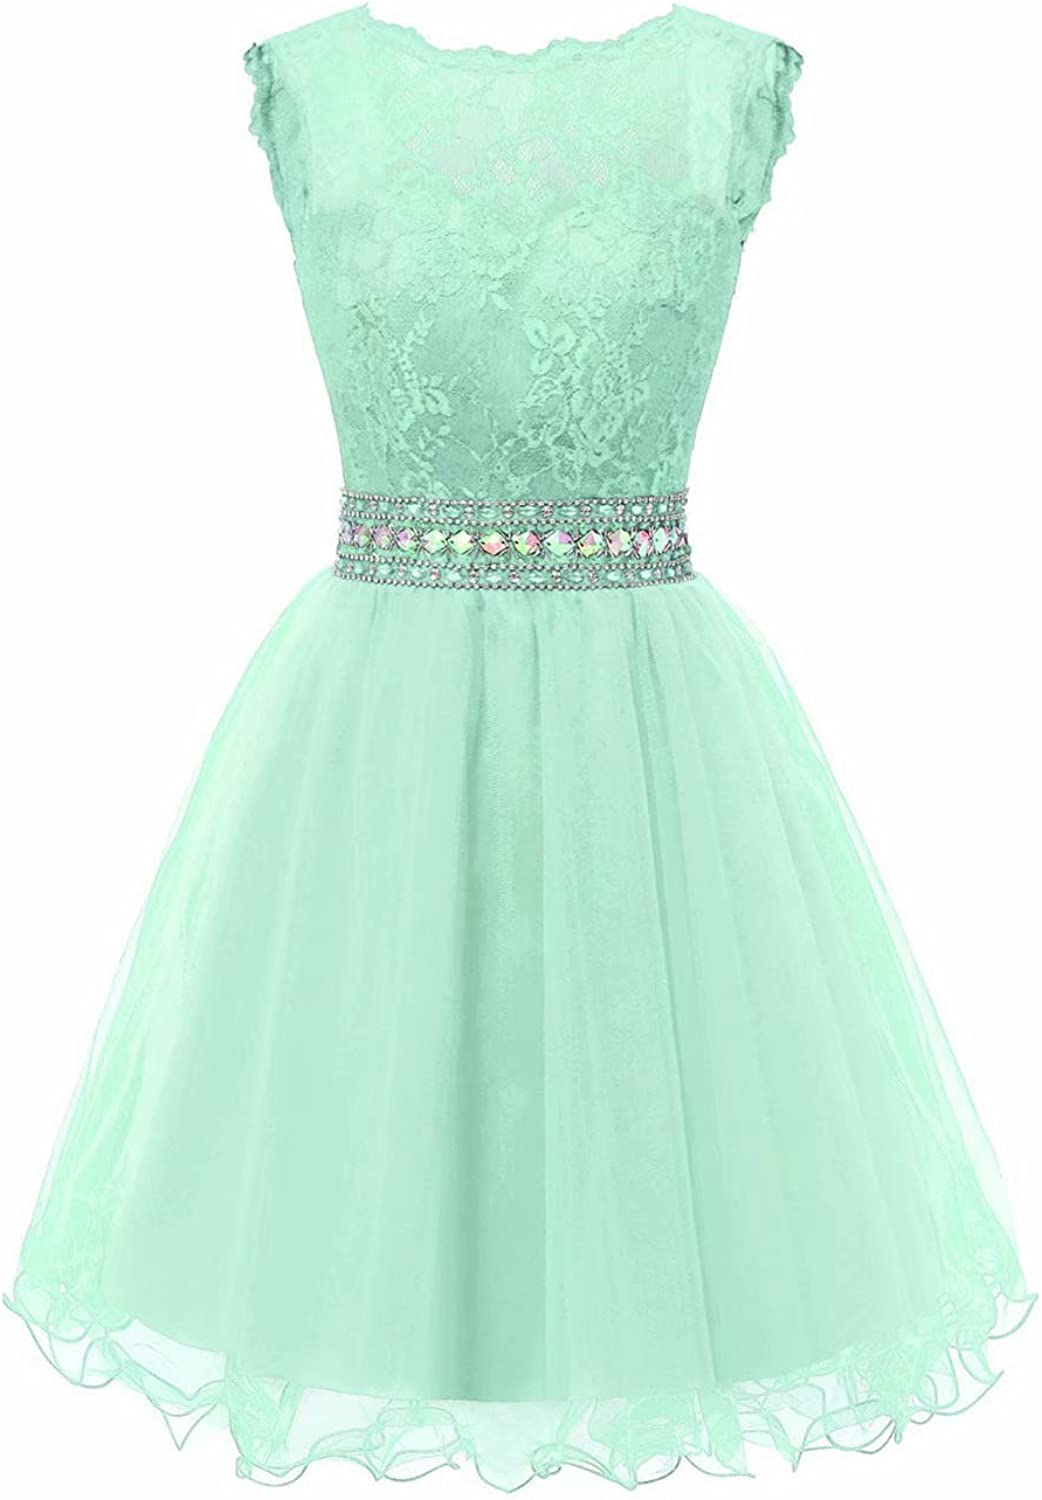 YOUTODRESS Women's Tulle Short Homecoming Dresses Lace Cocktail Evening for Junior